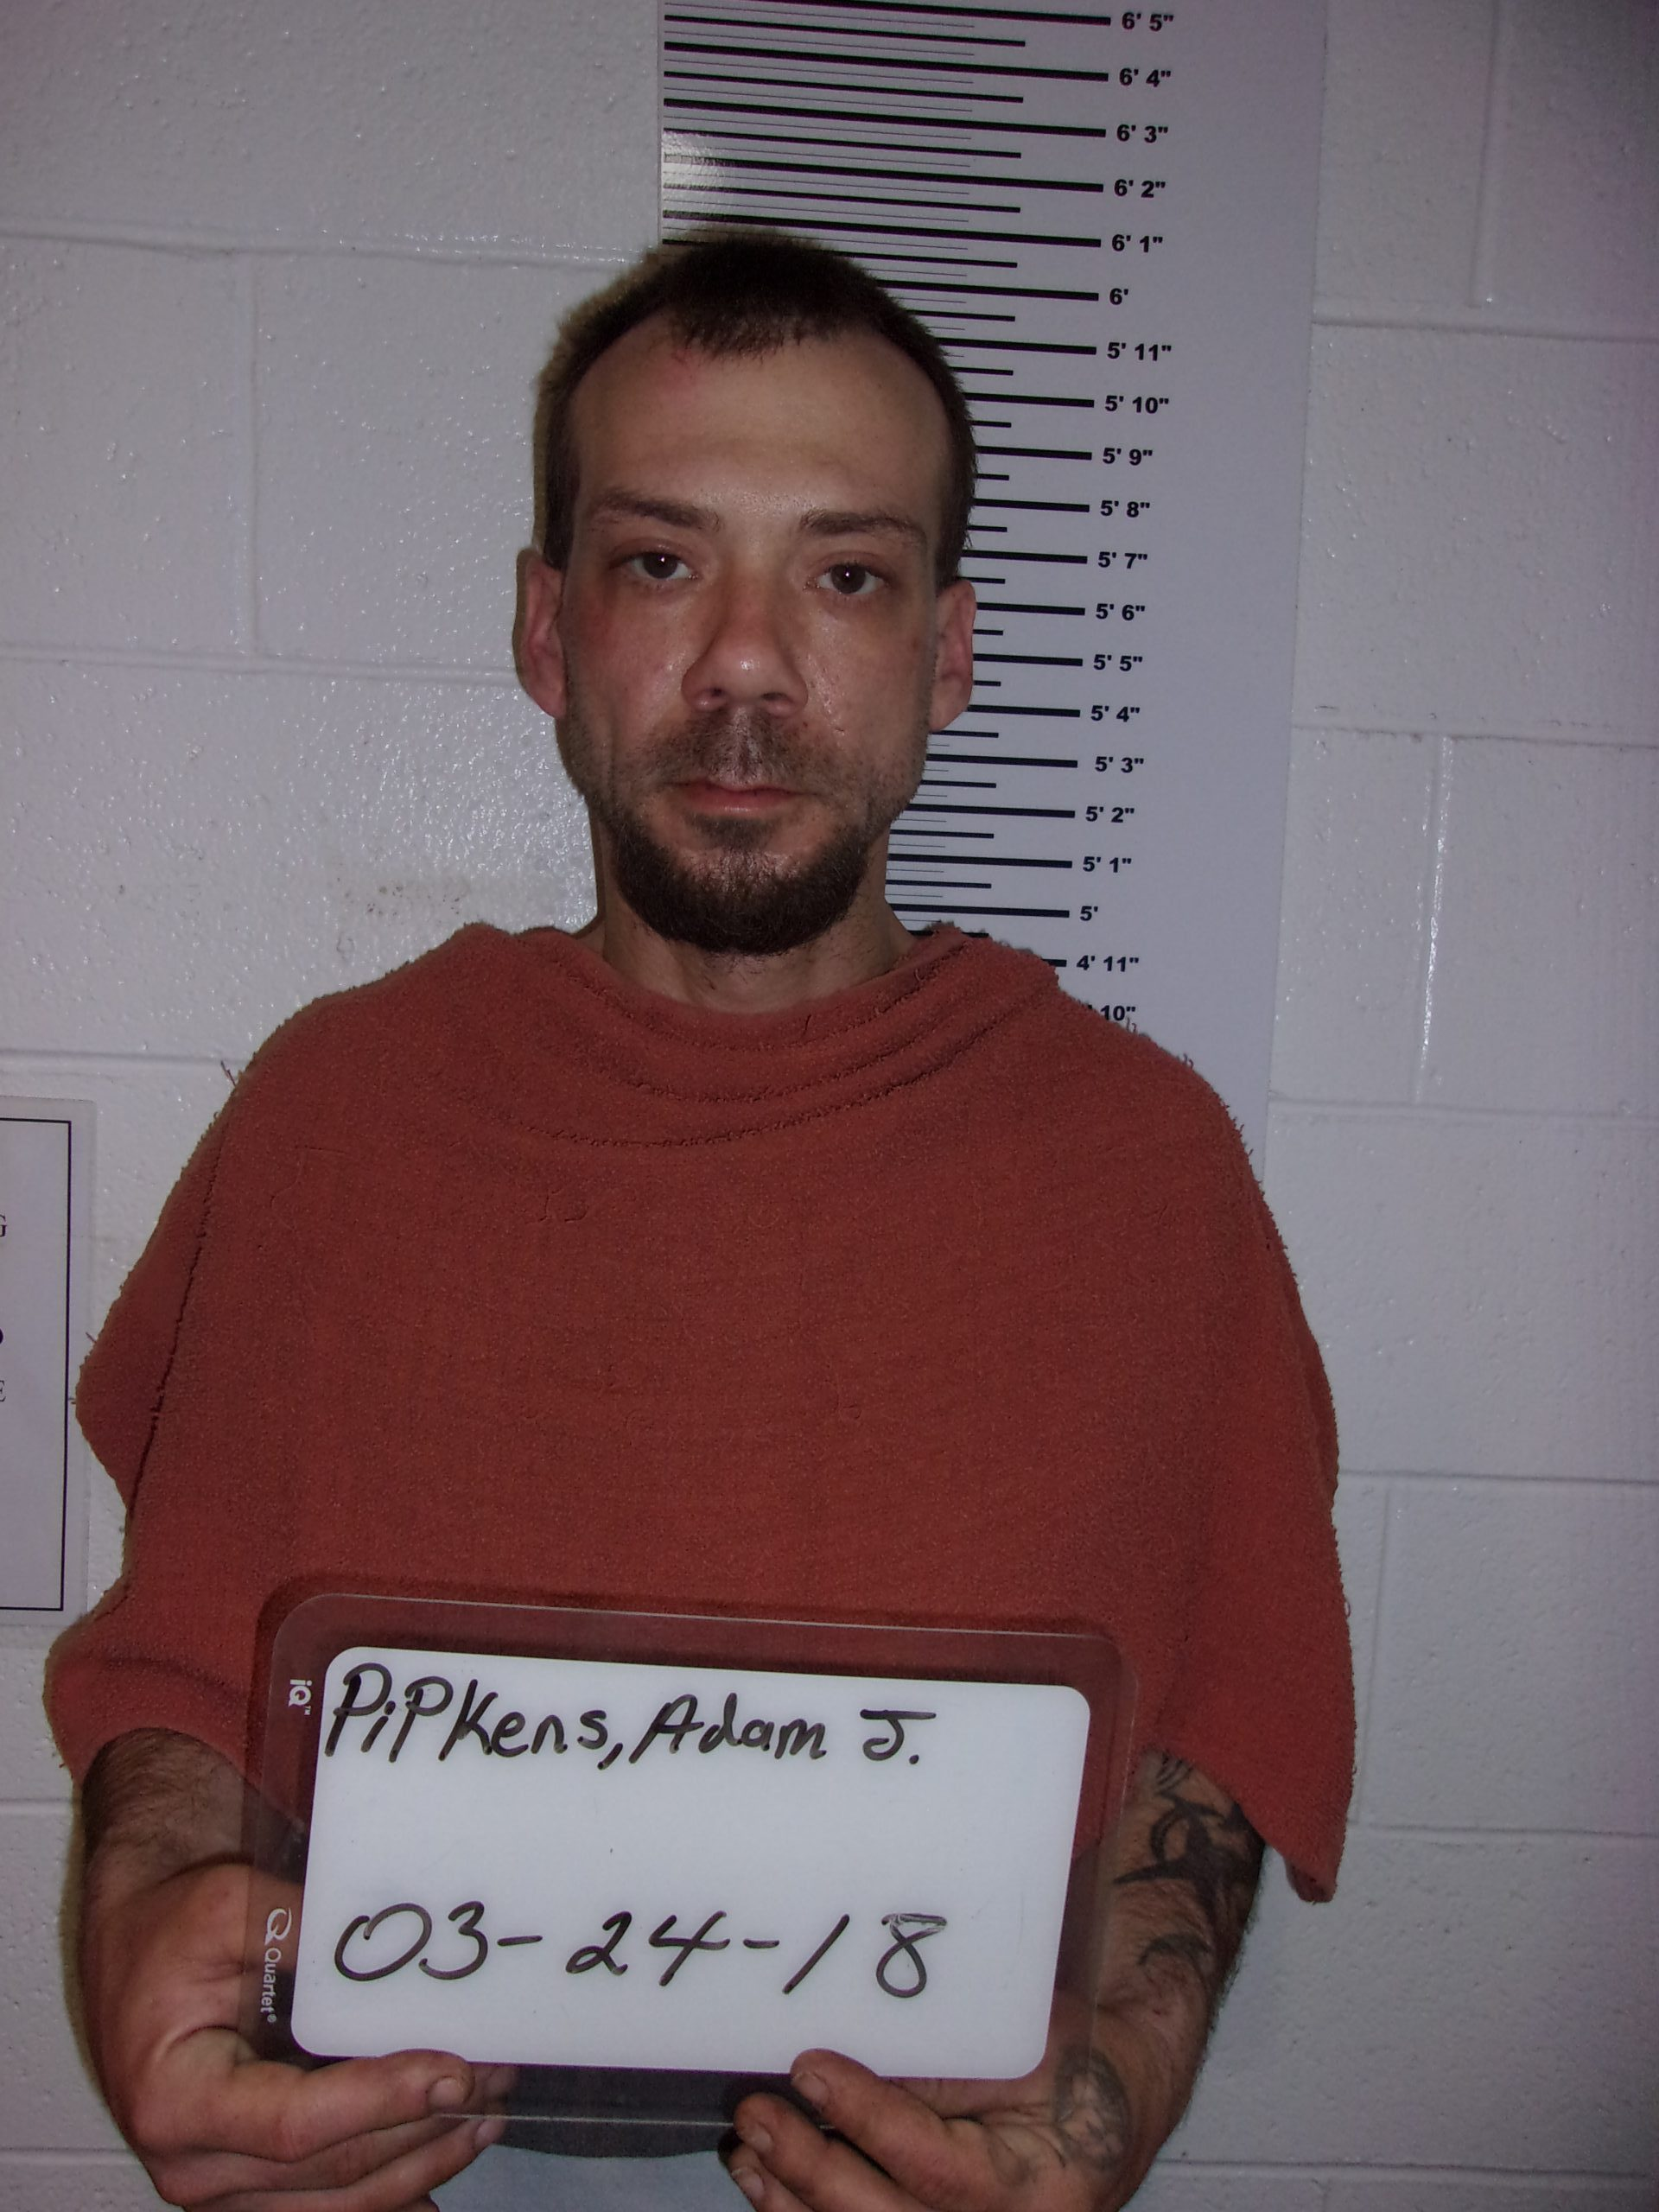 Clay County Man Arrested After Being Chased by Police While Driving an ATV